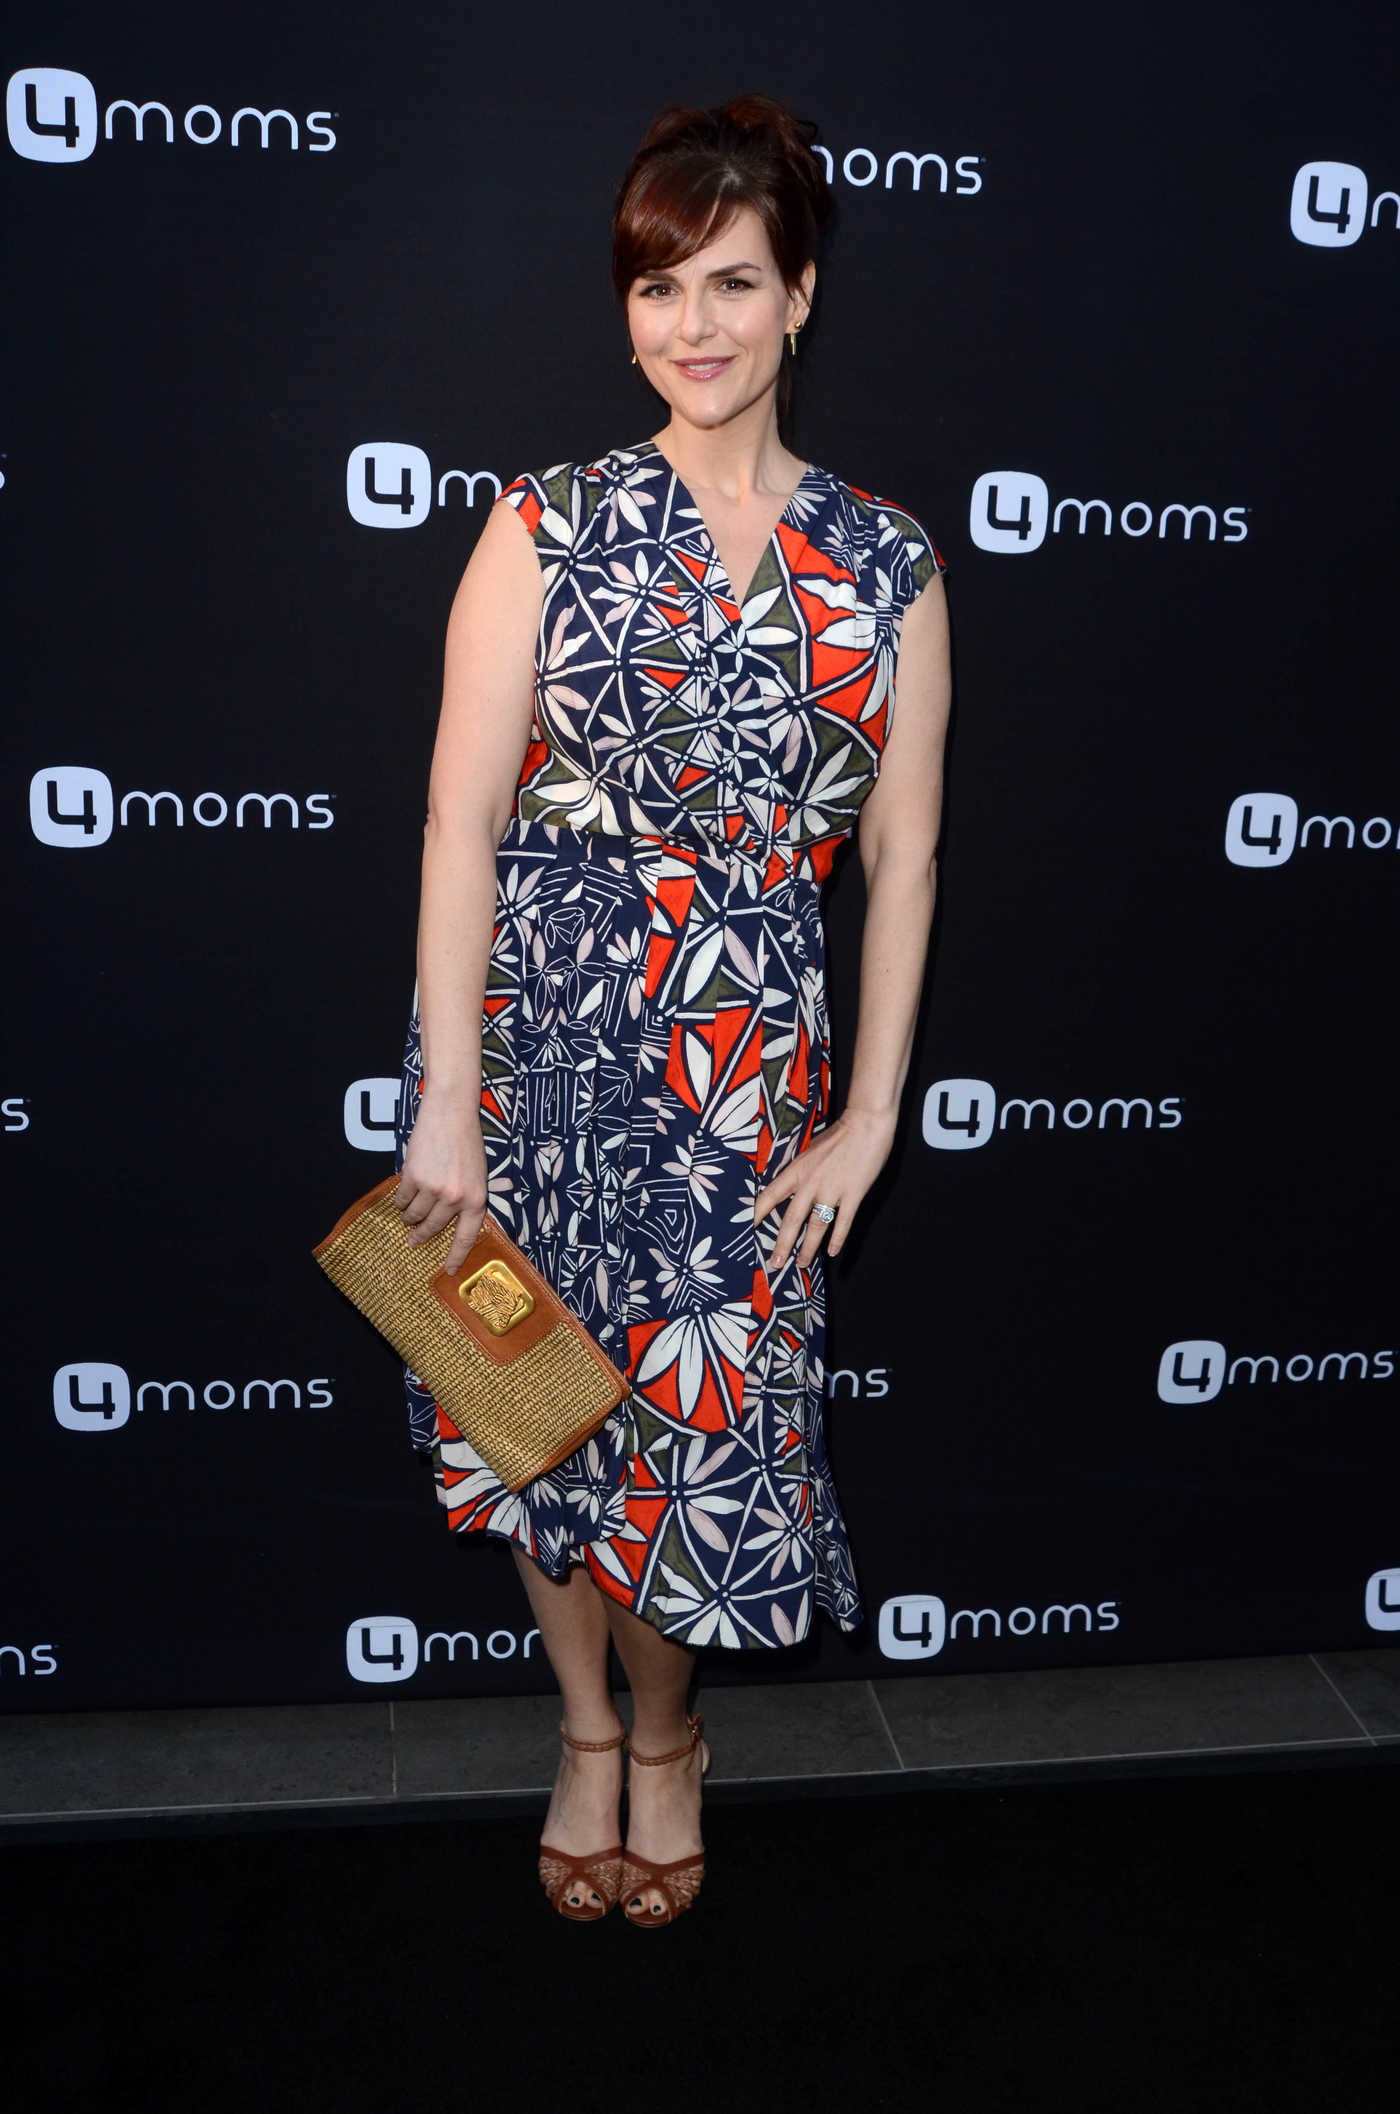 Sara Rue at 4moms Car Seat Launch Event in Los Angeles 08/04/2016